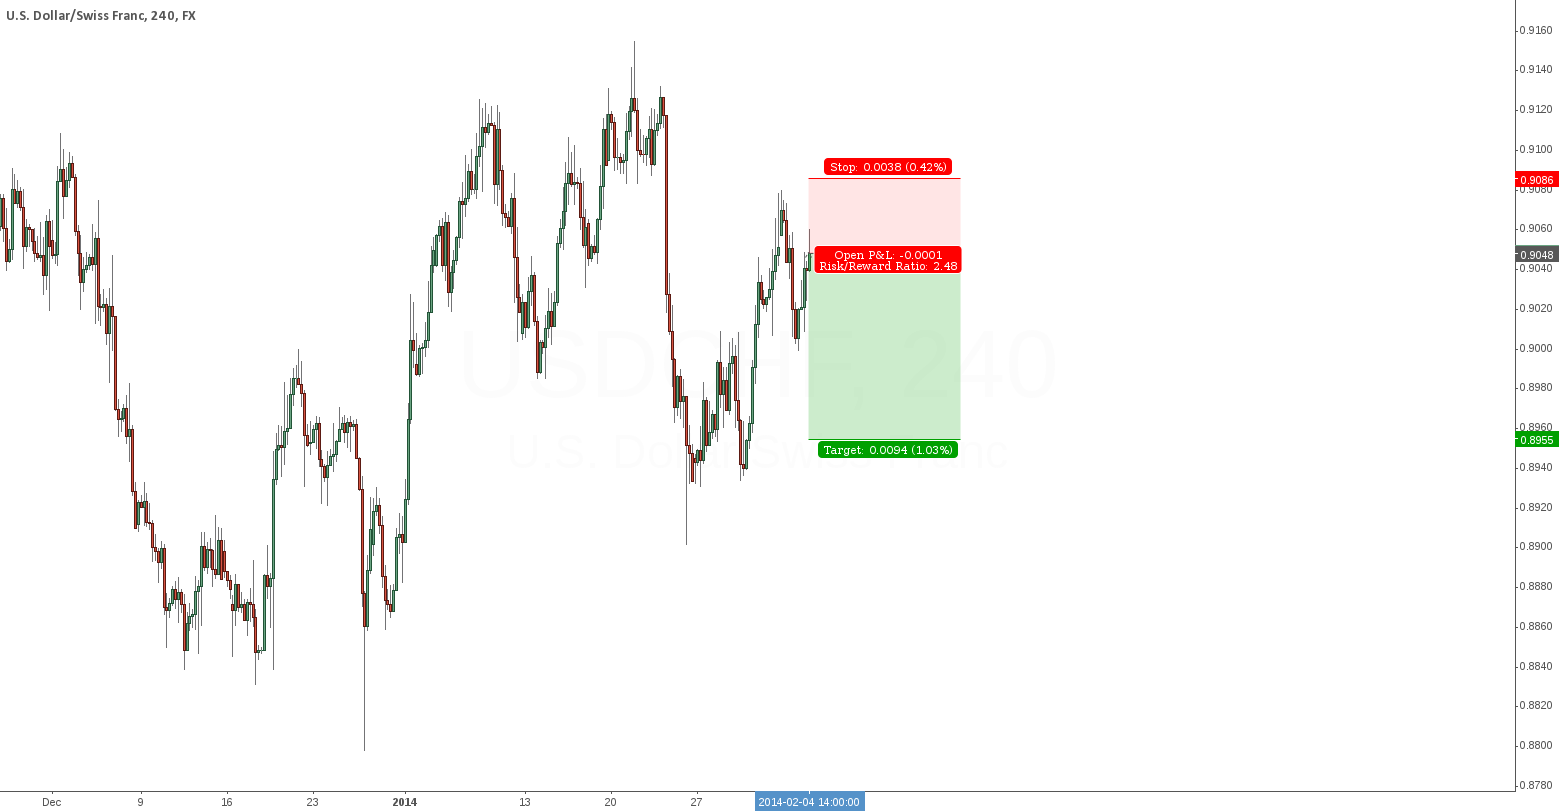 USDCHF shows some good downside-potential